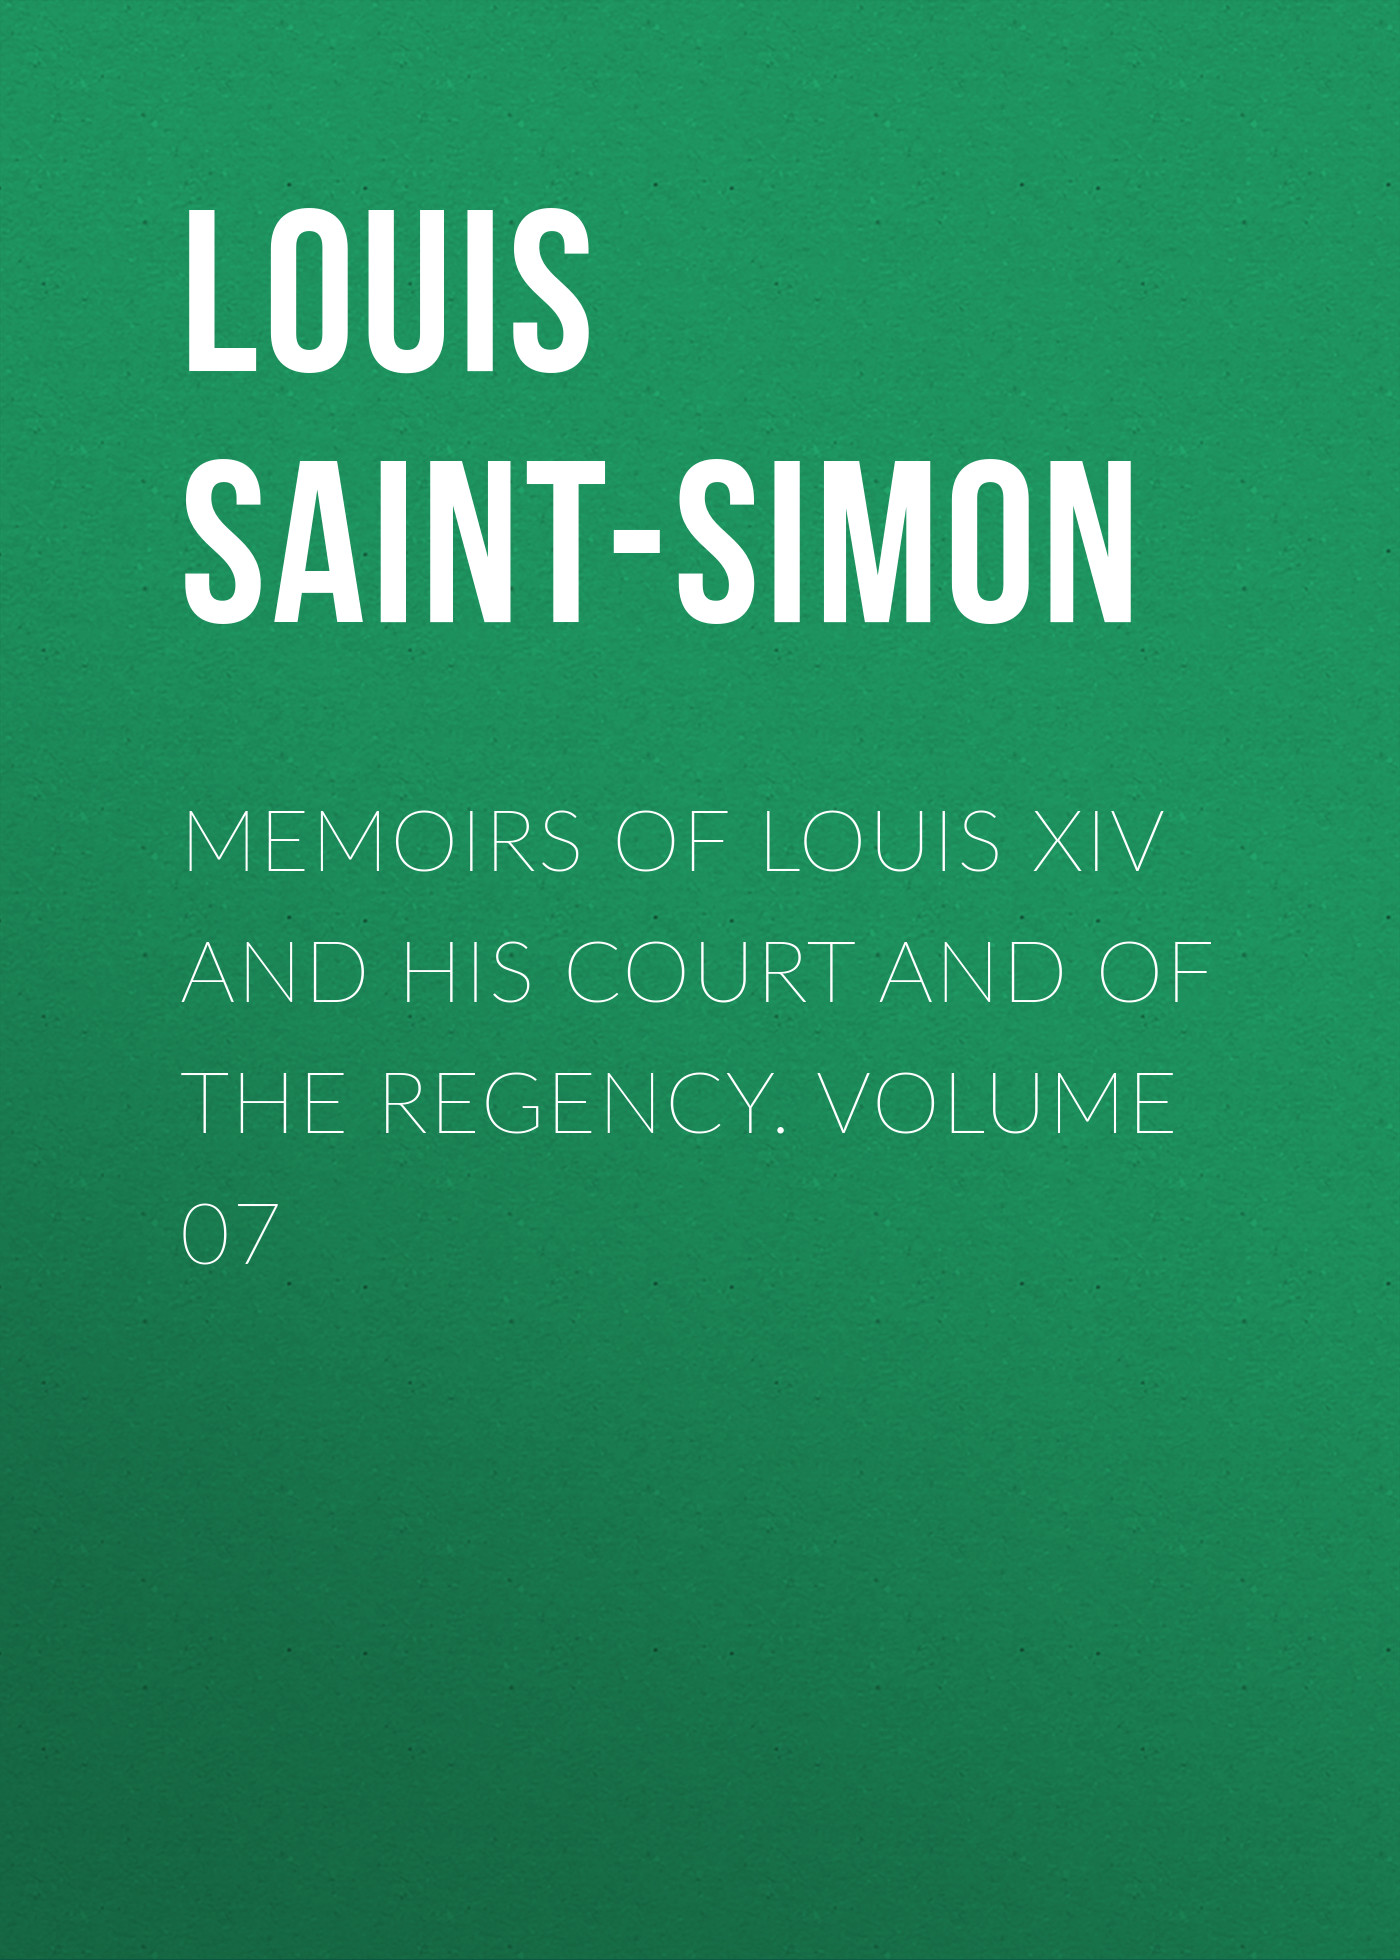 Фото - Louis Saint-Simon Memoirs of Louis XIV and His Court and of the Regency. Volume 07 jules marcou life letters and works of louis agassiz volume i